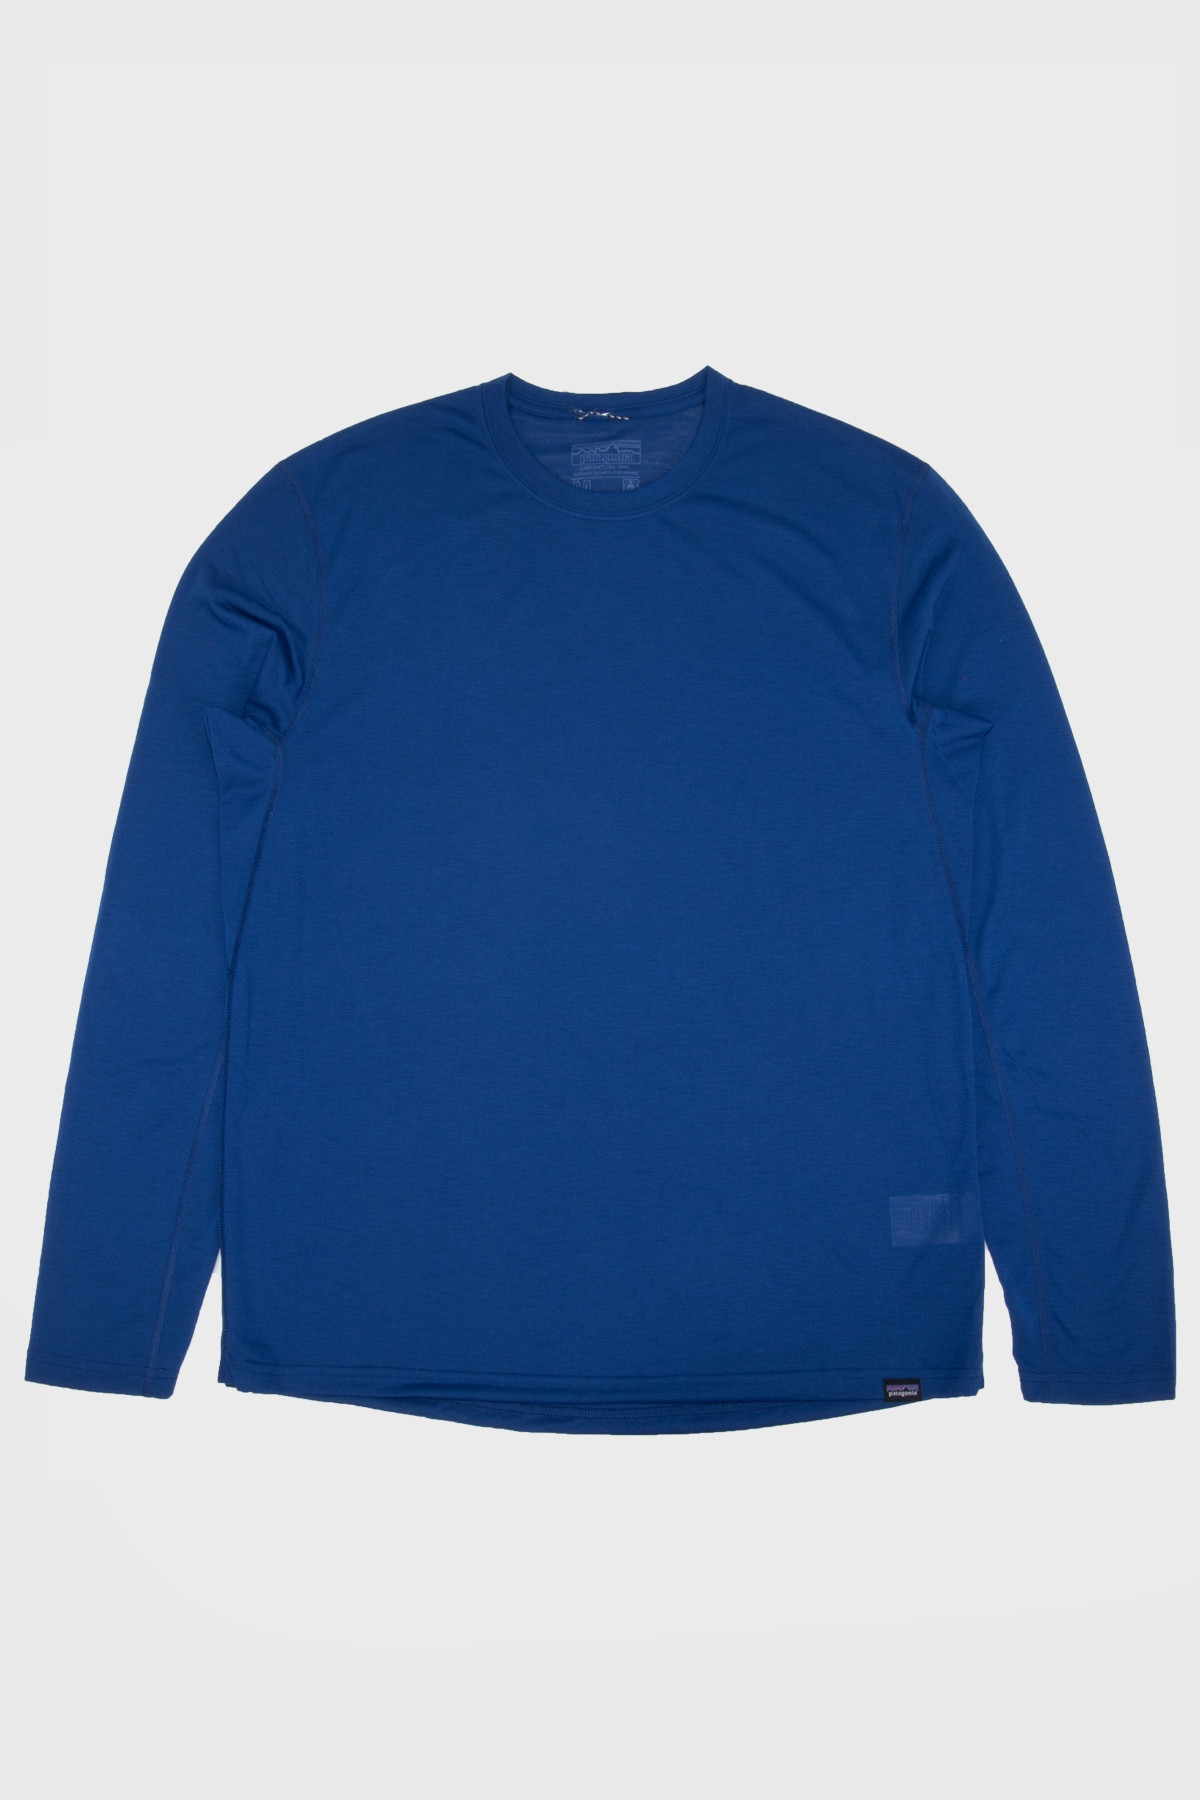 patagonia - Long sleeve Capilene cool trail shirt - Superior blue